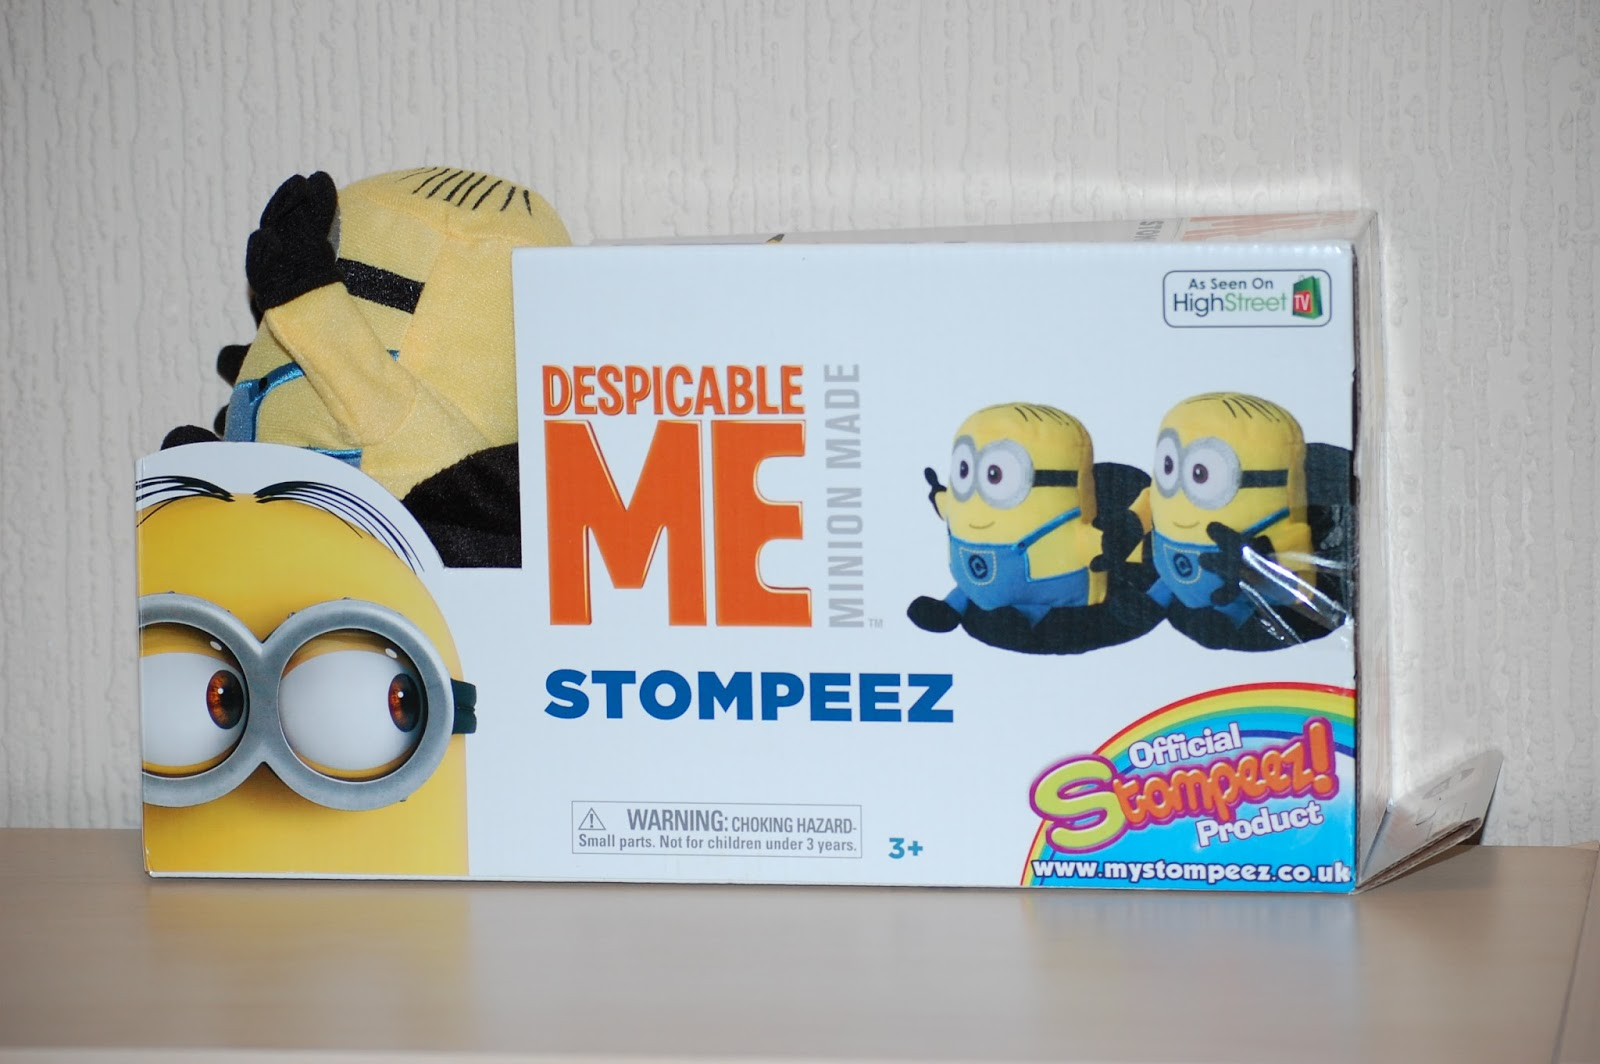 Minion Stompeez Slippers My Three And Me Despicable me 3 handclap trailer (movie hd) minions animation blockbuster hd. minion stompeez slippers my three and me